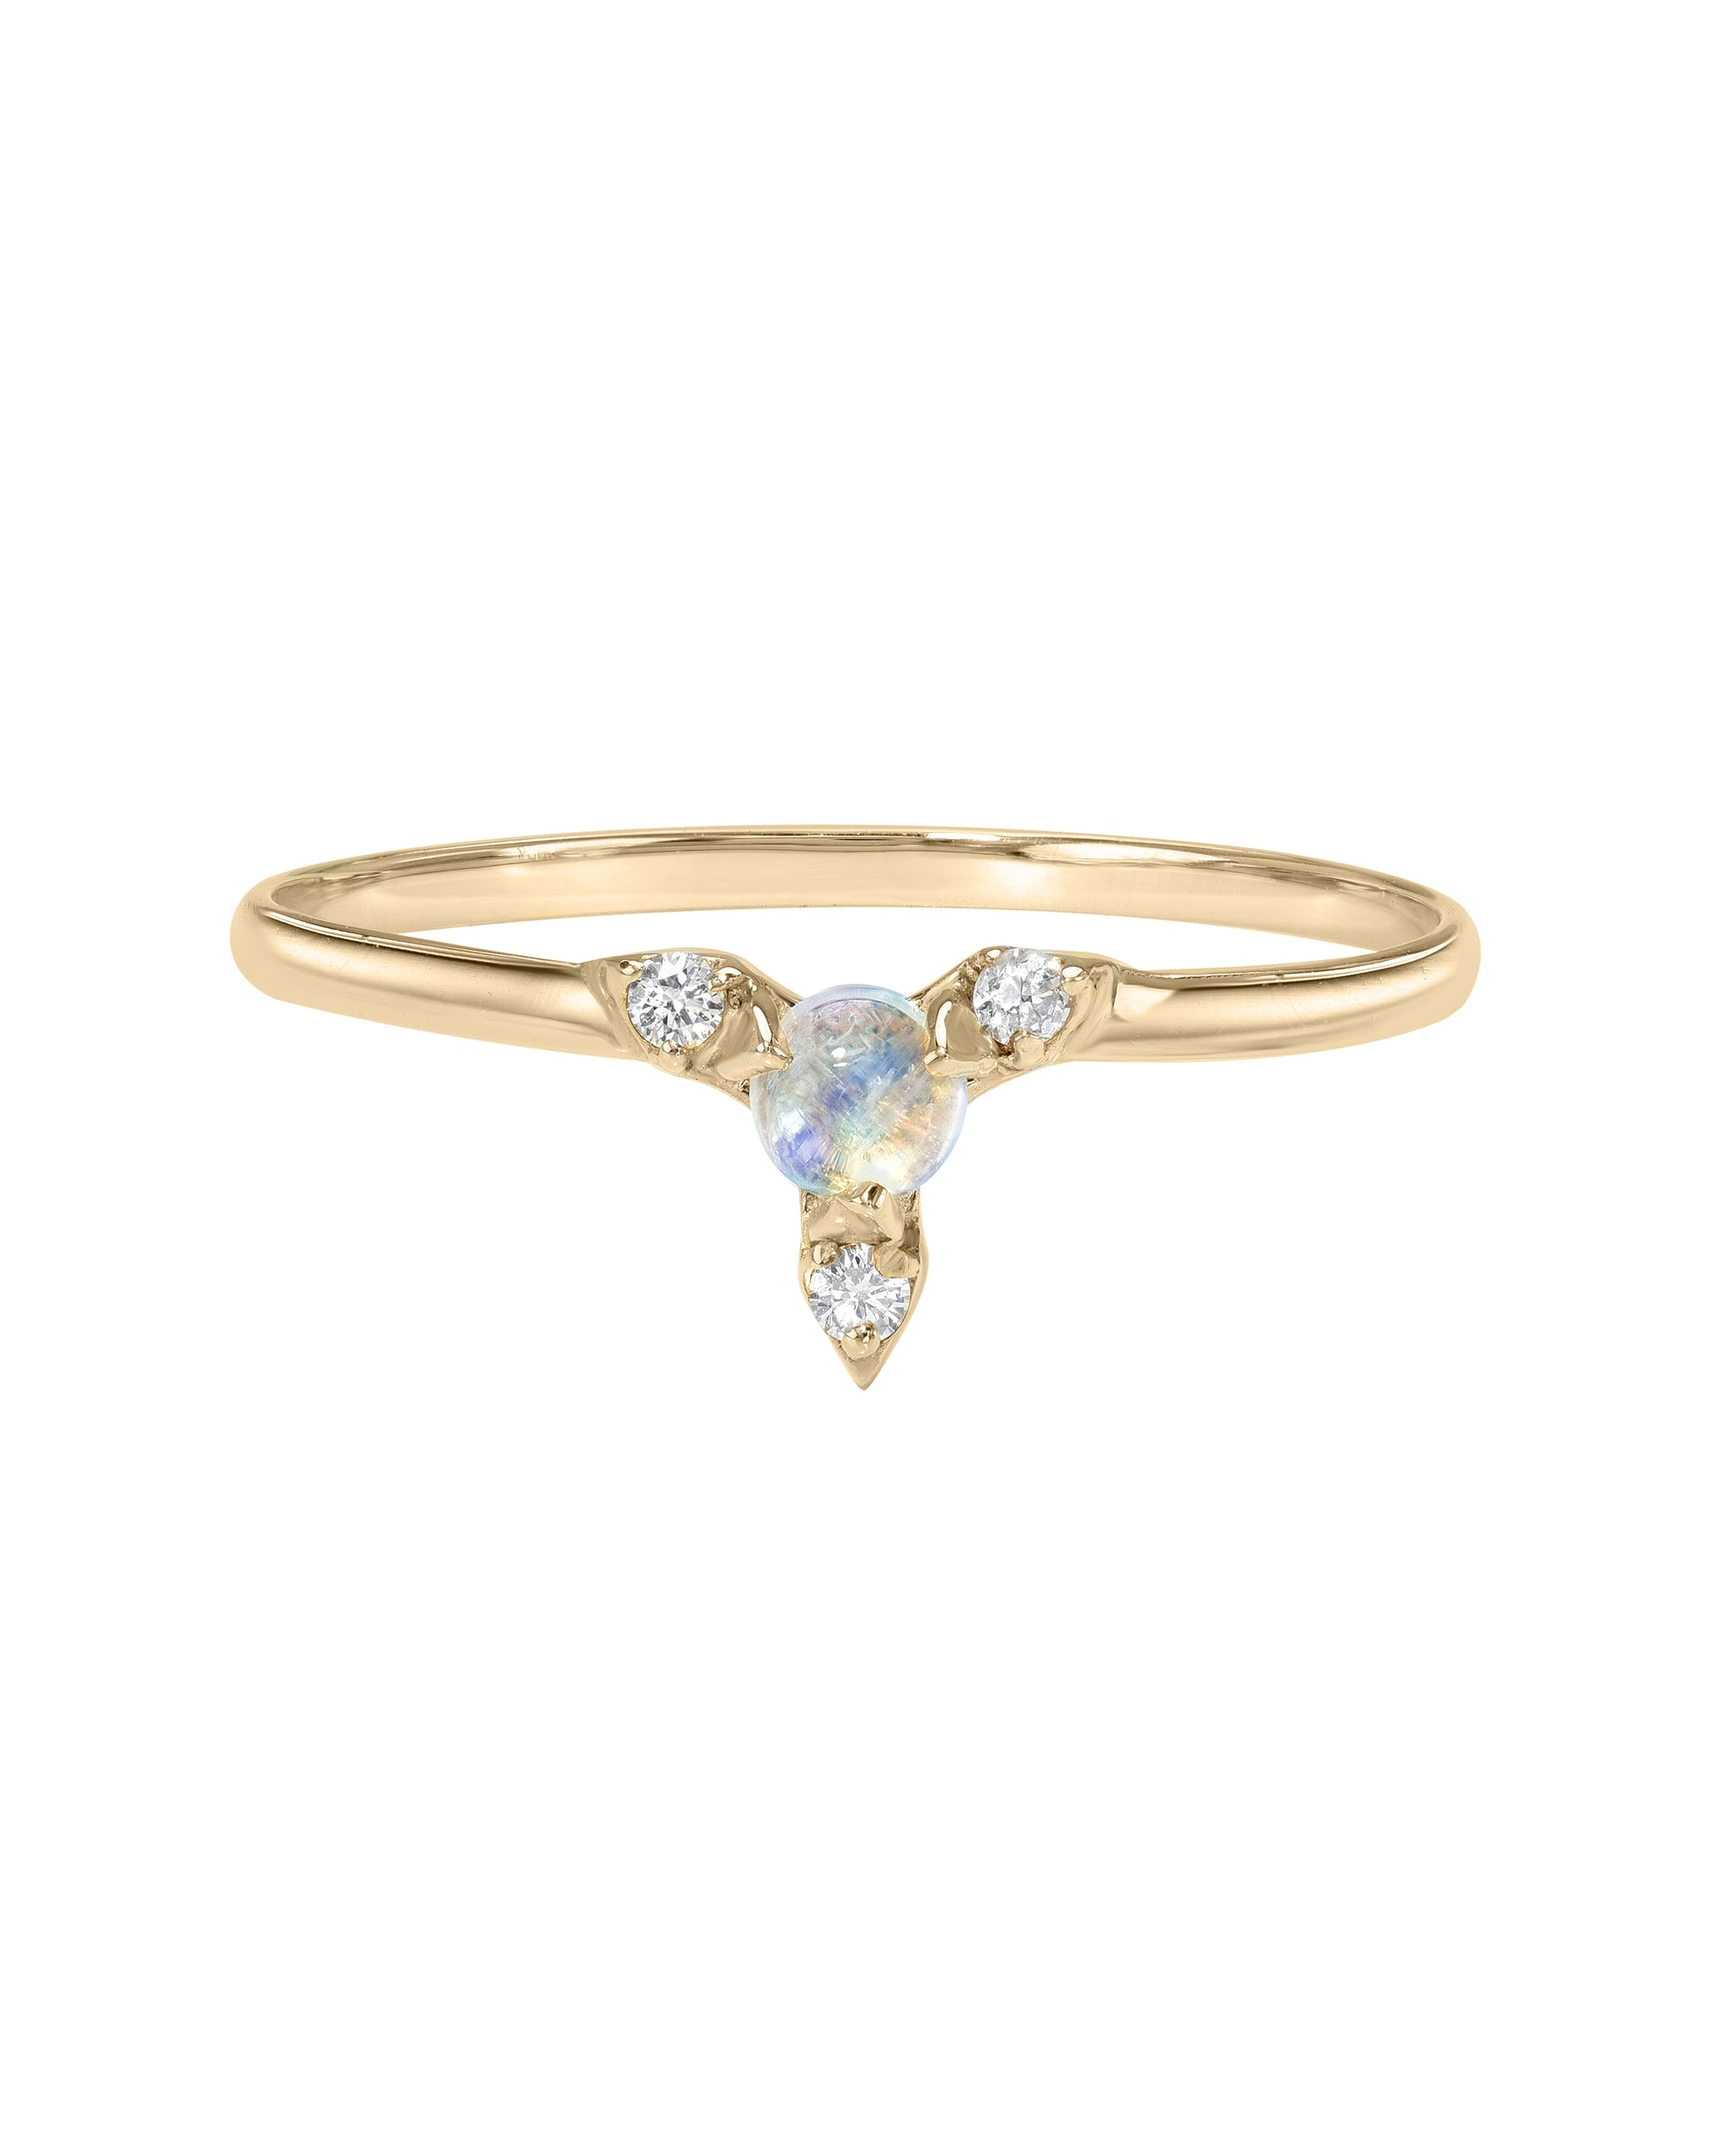 Nova Ring, Moonstone and Diamond Supernova Ring, 14k Yellow Gold, Made by Turquoise and Tobacco